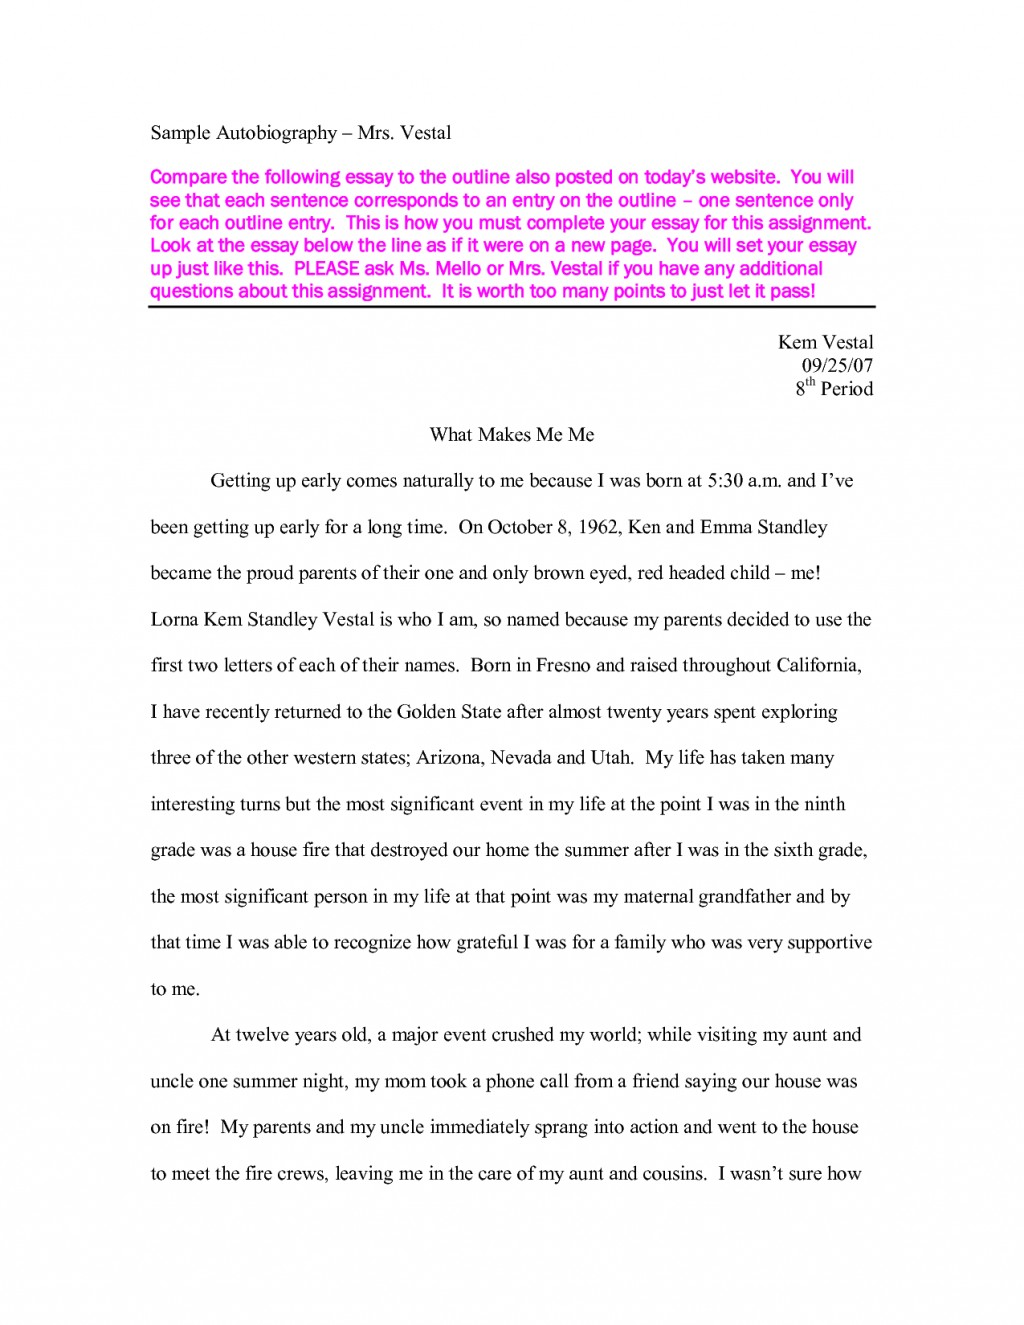 008 Autobiography Essay Example How To Write Unique Of About Yourself Tagalog Bio For Students Large